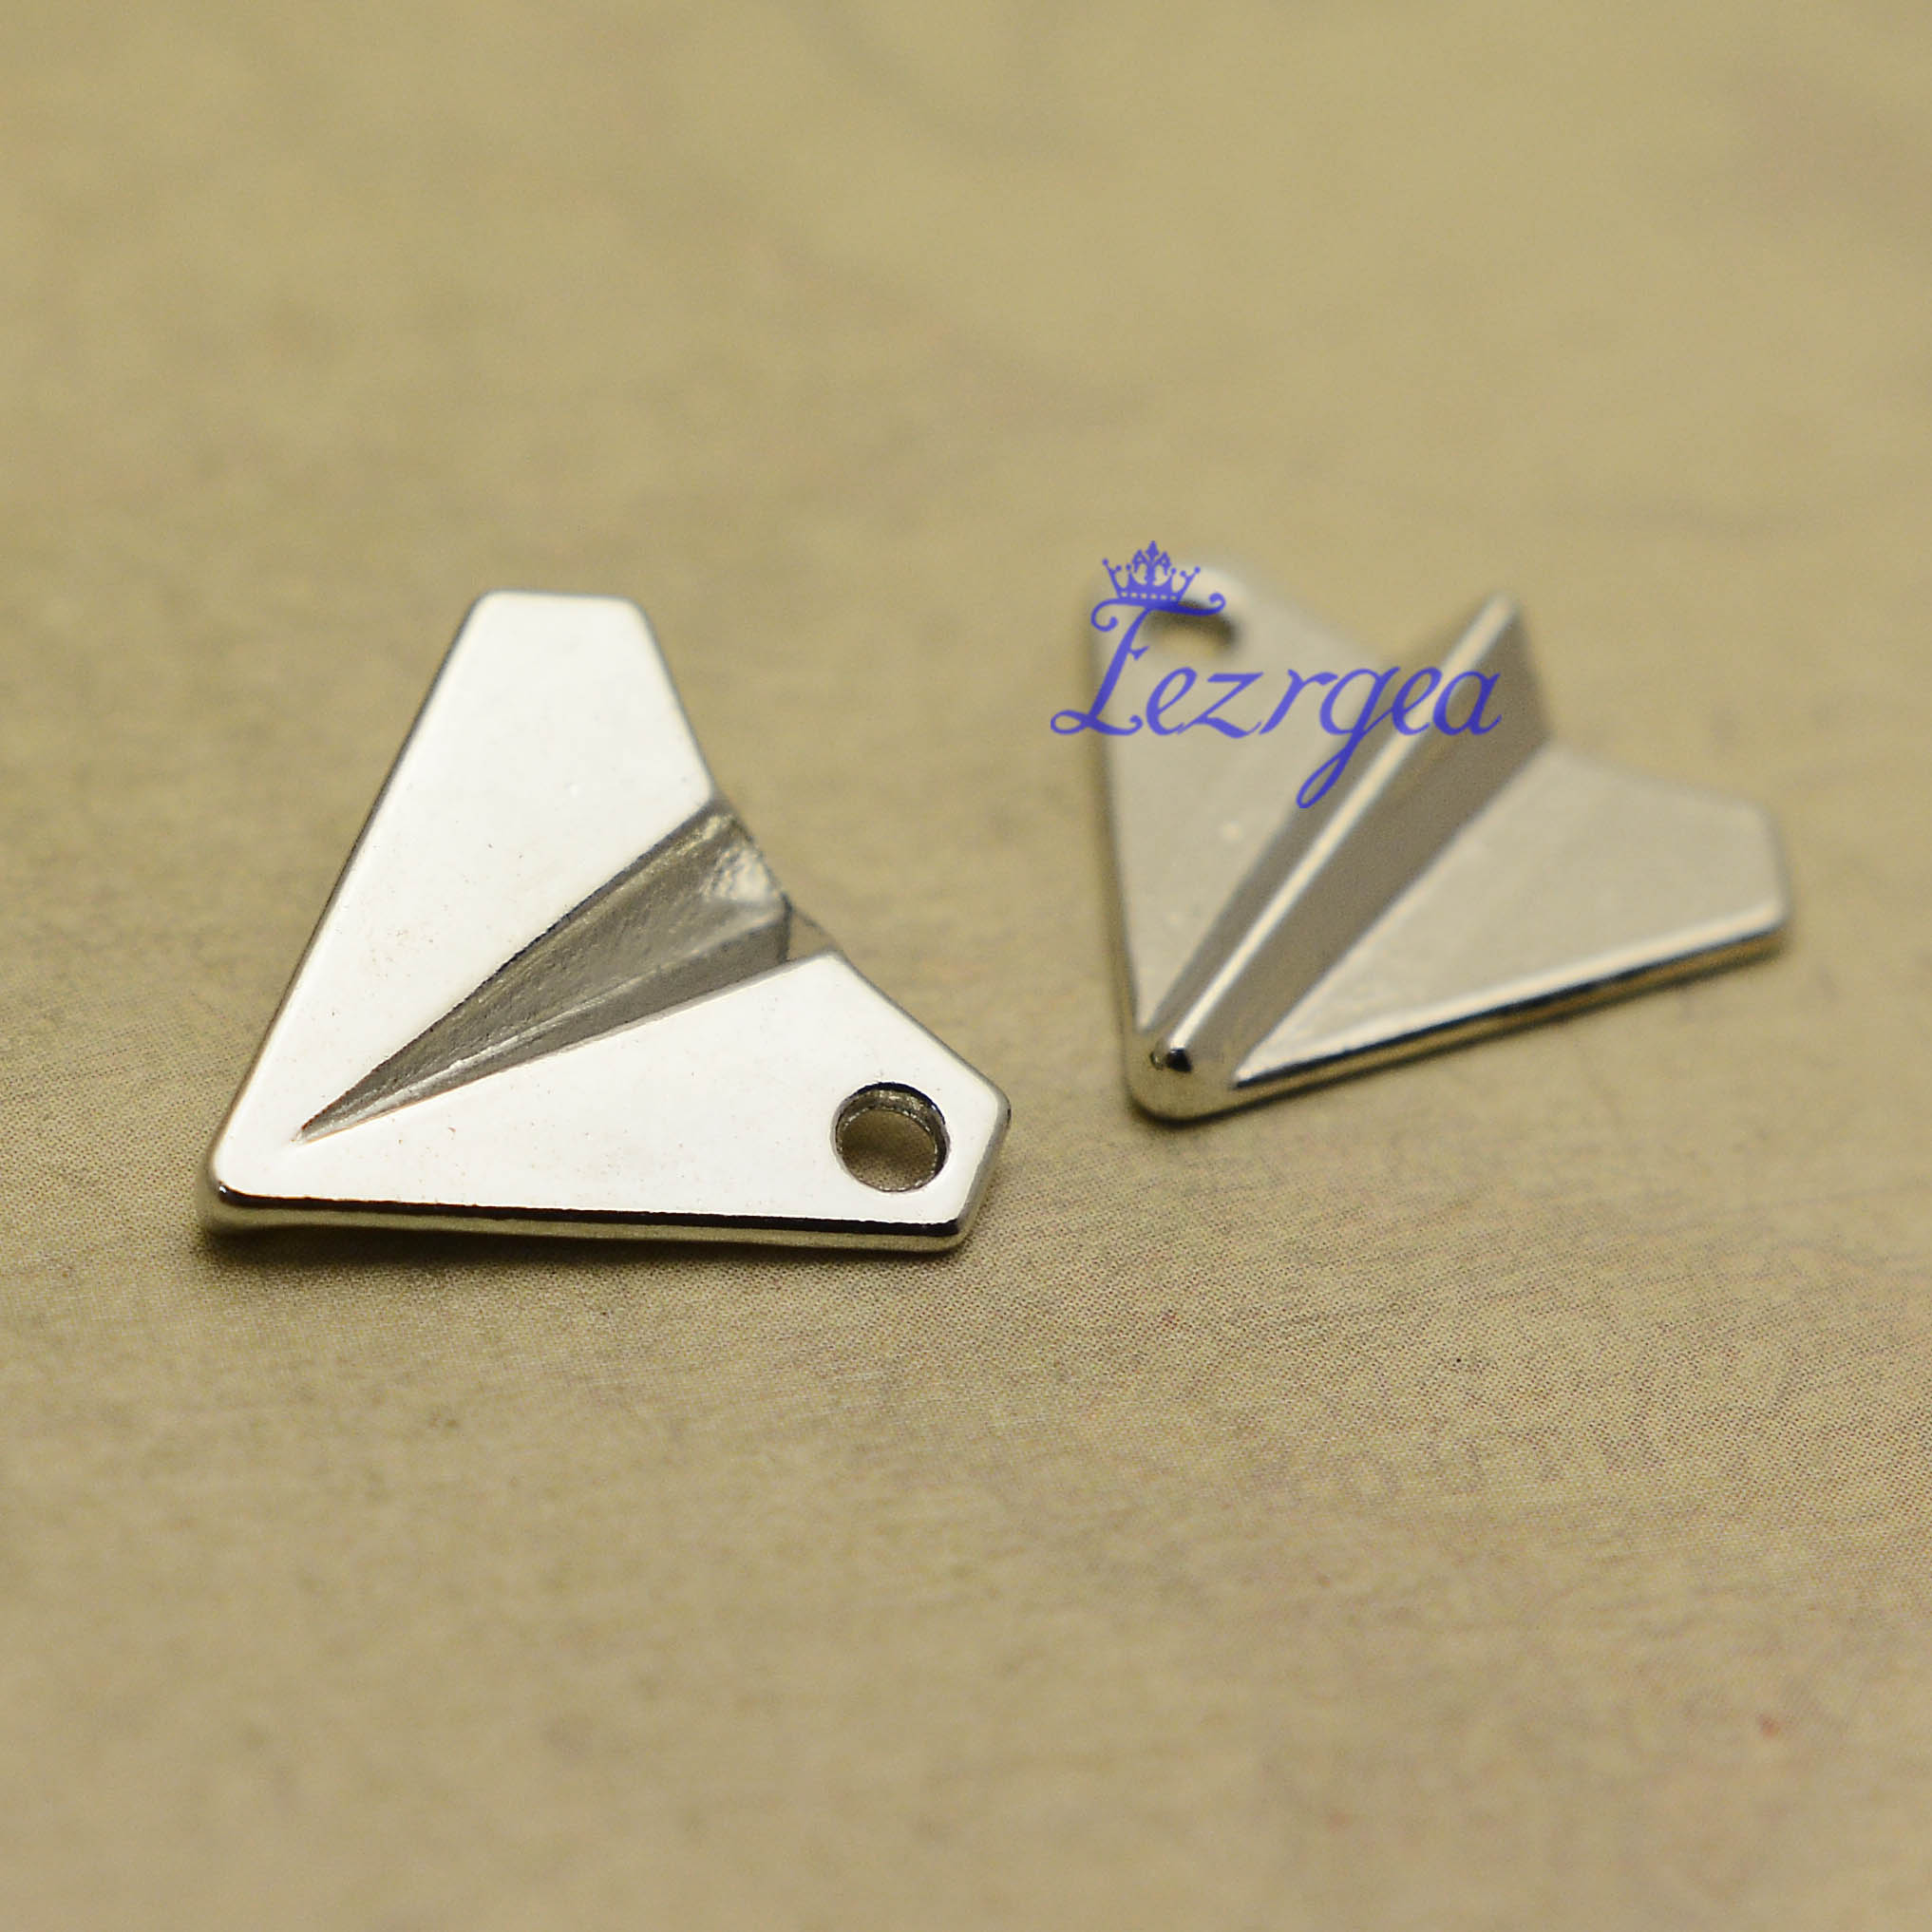 30pcs/lot--18x17mm, Antique silver plated/bronze plated paper airplane plane Charms,DIY supplies,Jewelry accessories image